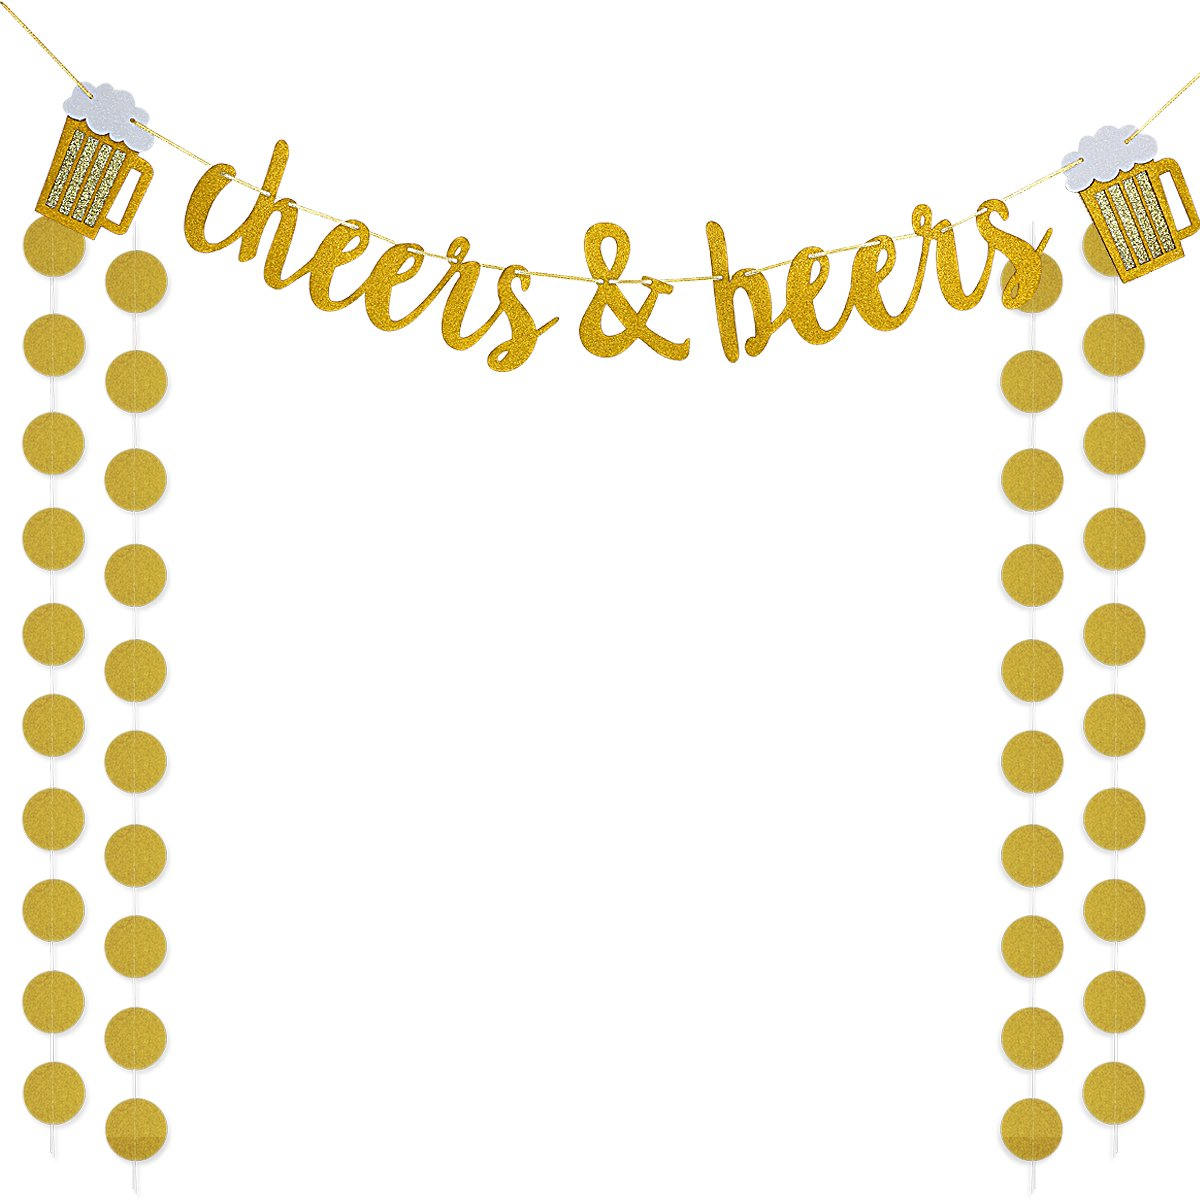 Gold Glittery Cheers & Beers Banner and Gold Glittery Circle Dots Garland (25Pcs Circle Dots),for Bachelorette Baby Shower Graduation Wedding Hawaii Birthday Party Decoration Supplies by LeeSky